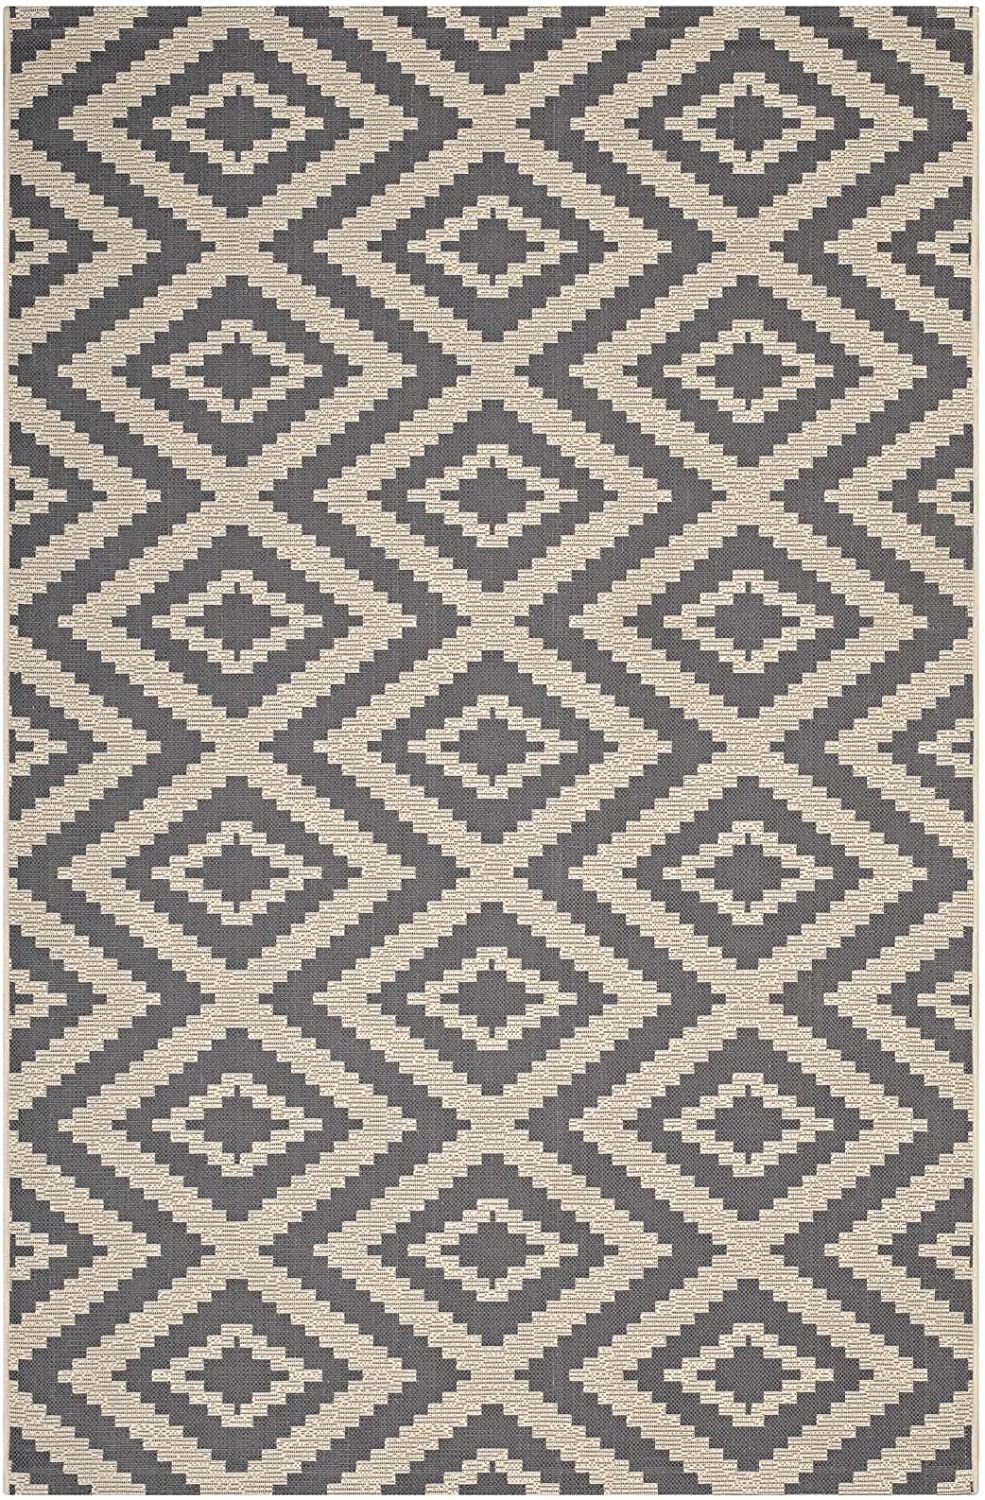 Modway Jagged Geometric Diamond Trellis 8x10 Indoor And Outdoor In Gray And Beige Furniture Decor